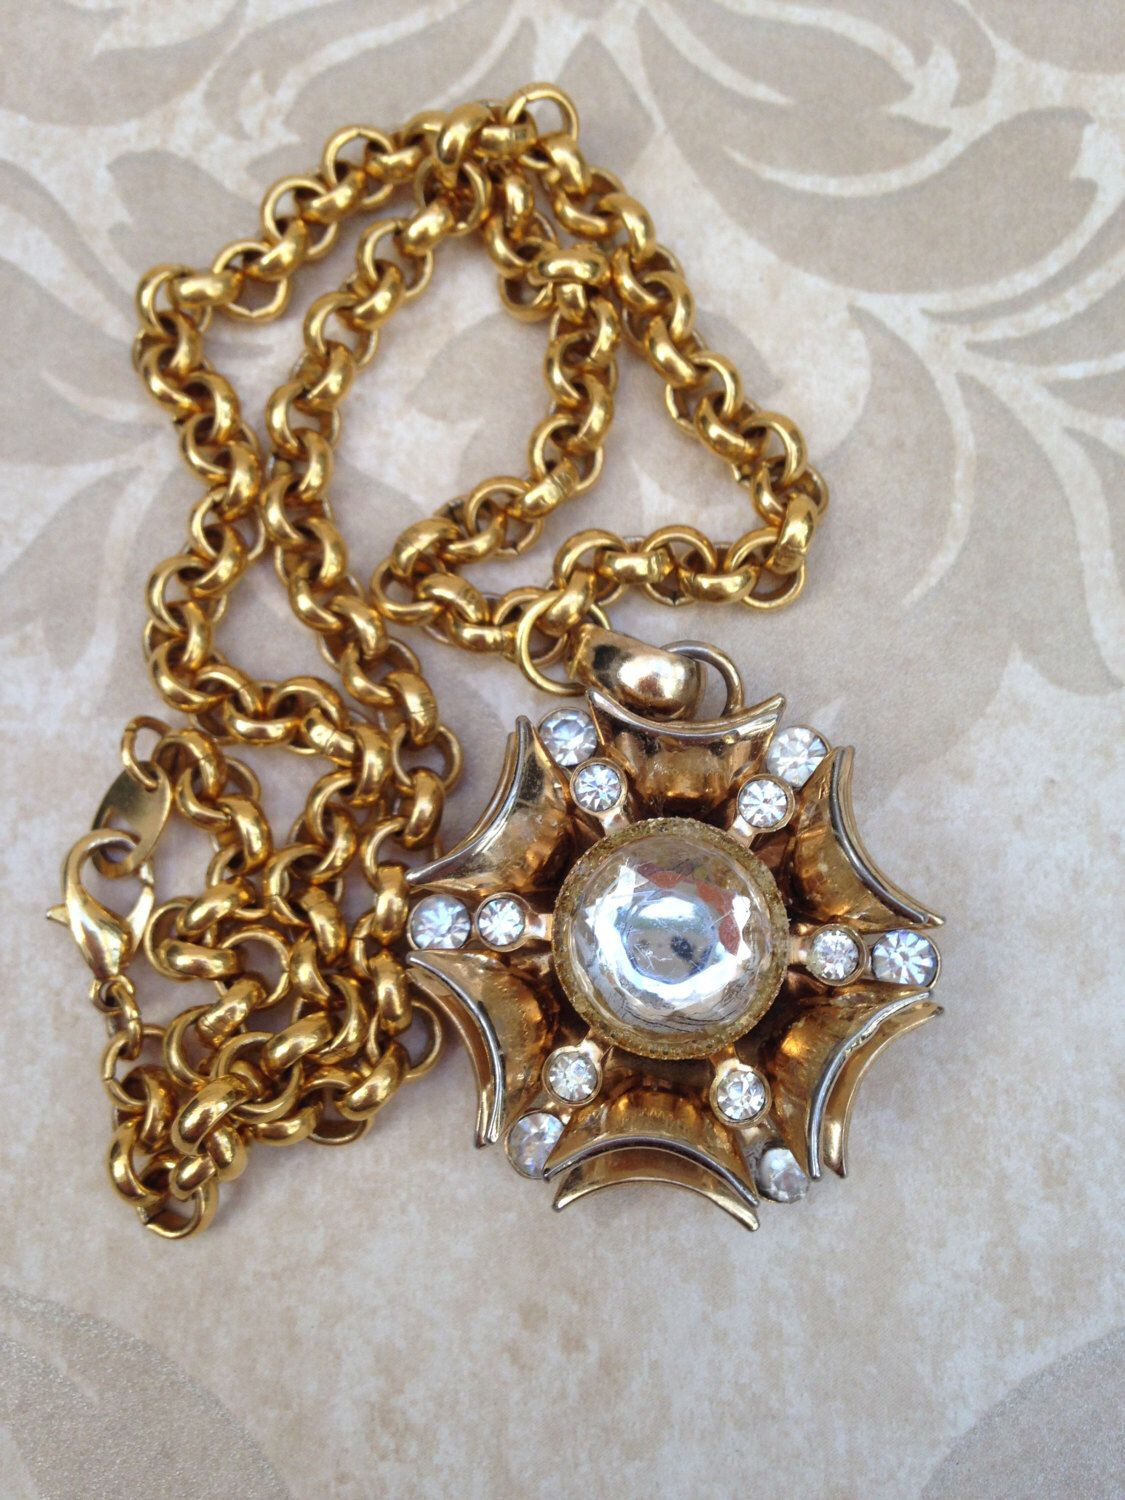 tradesy chanel cambon medallion plated round pendant i paris large dallion rue gold big m necklace